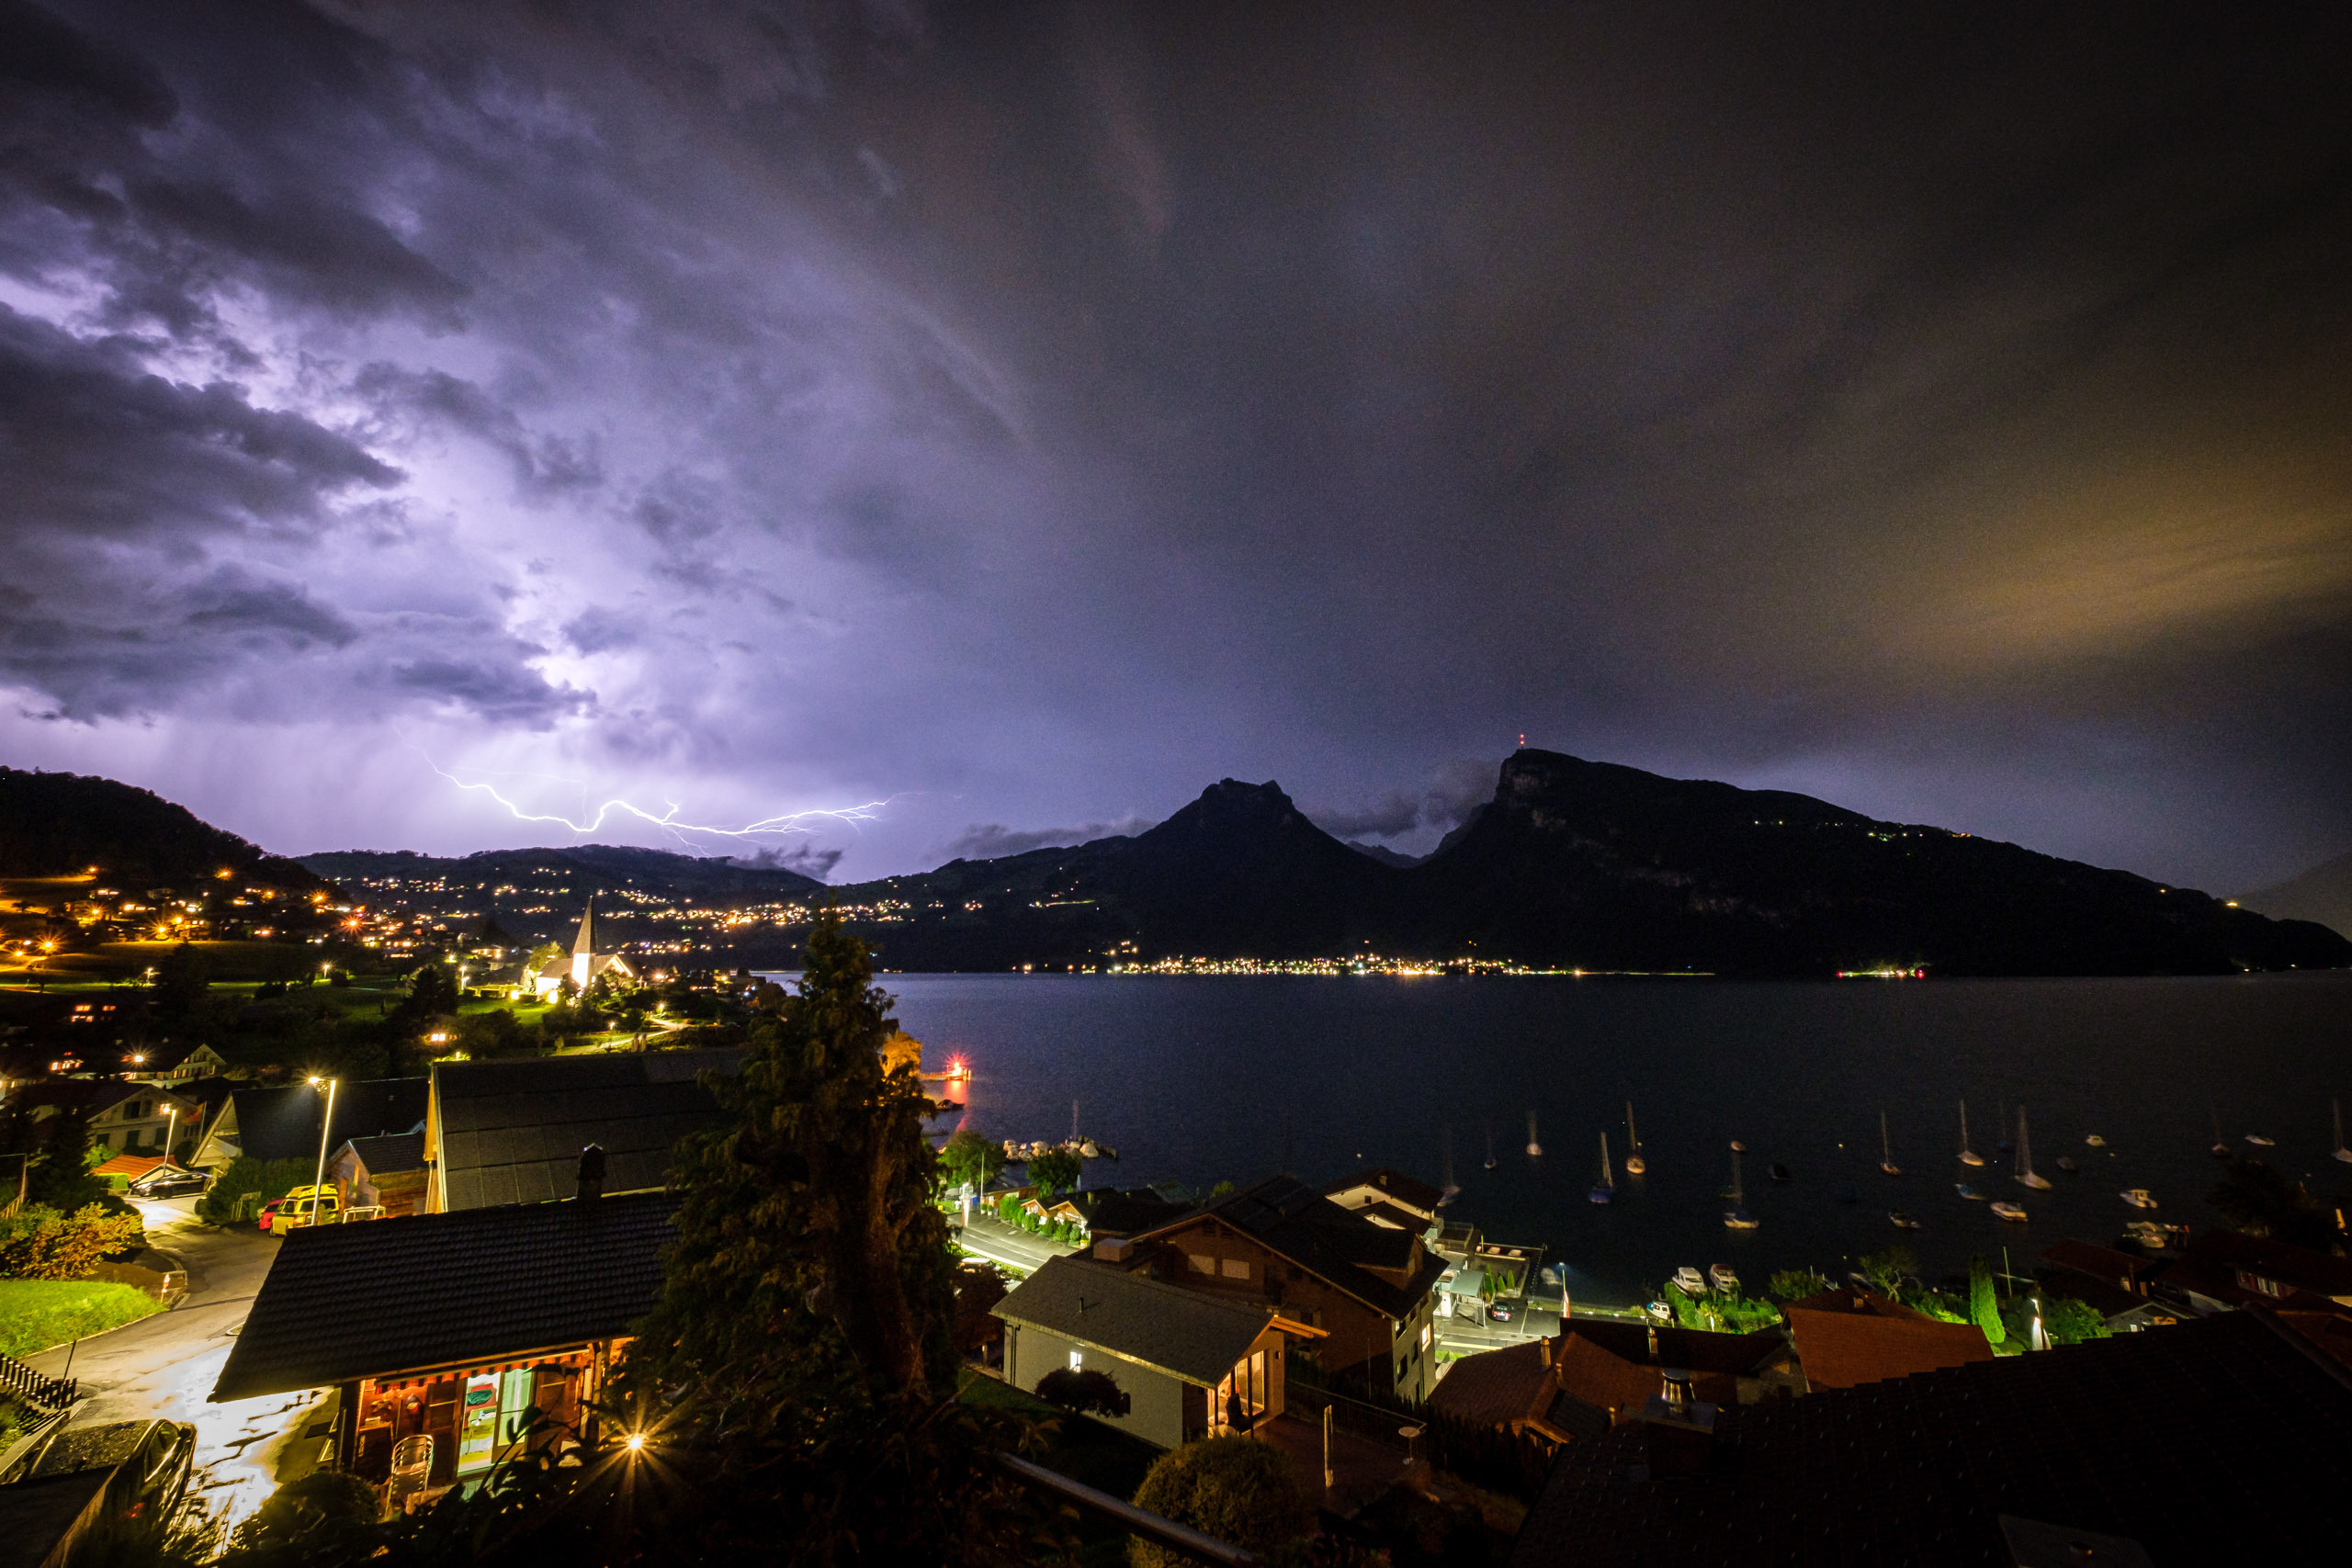 Lightning over Sigriswil